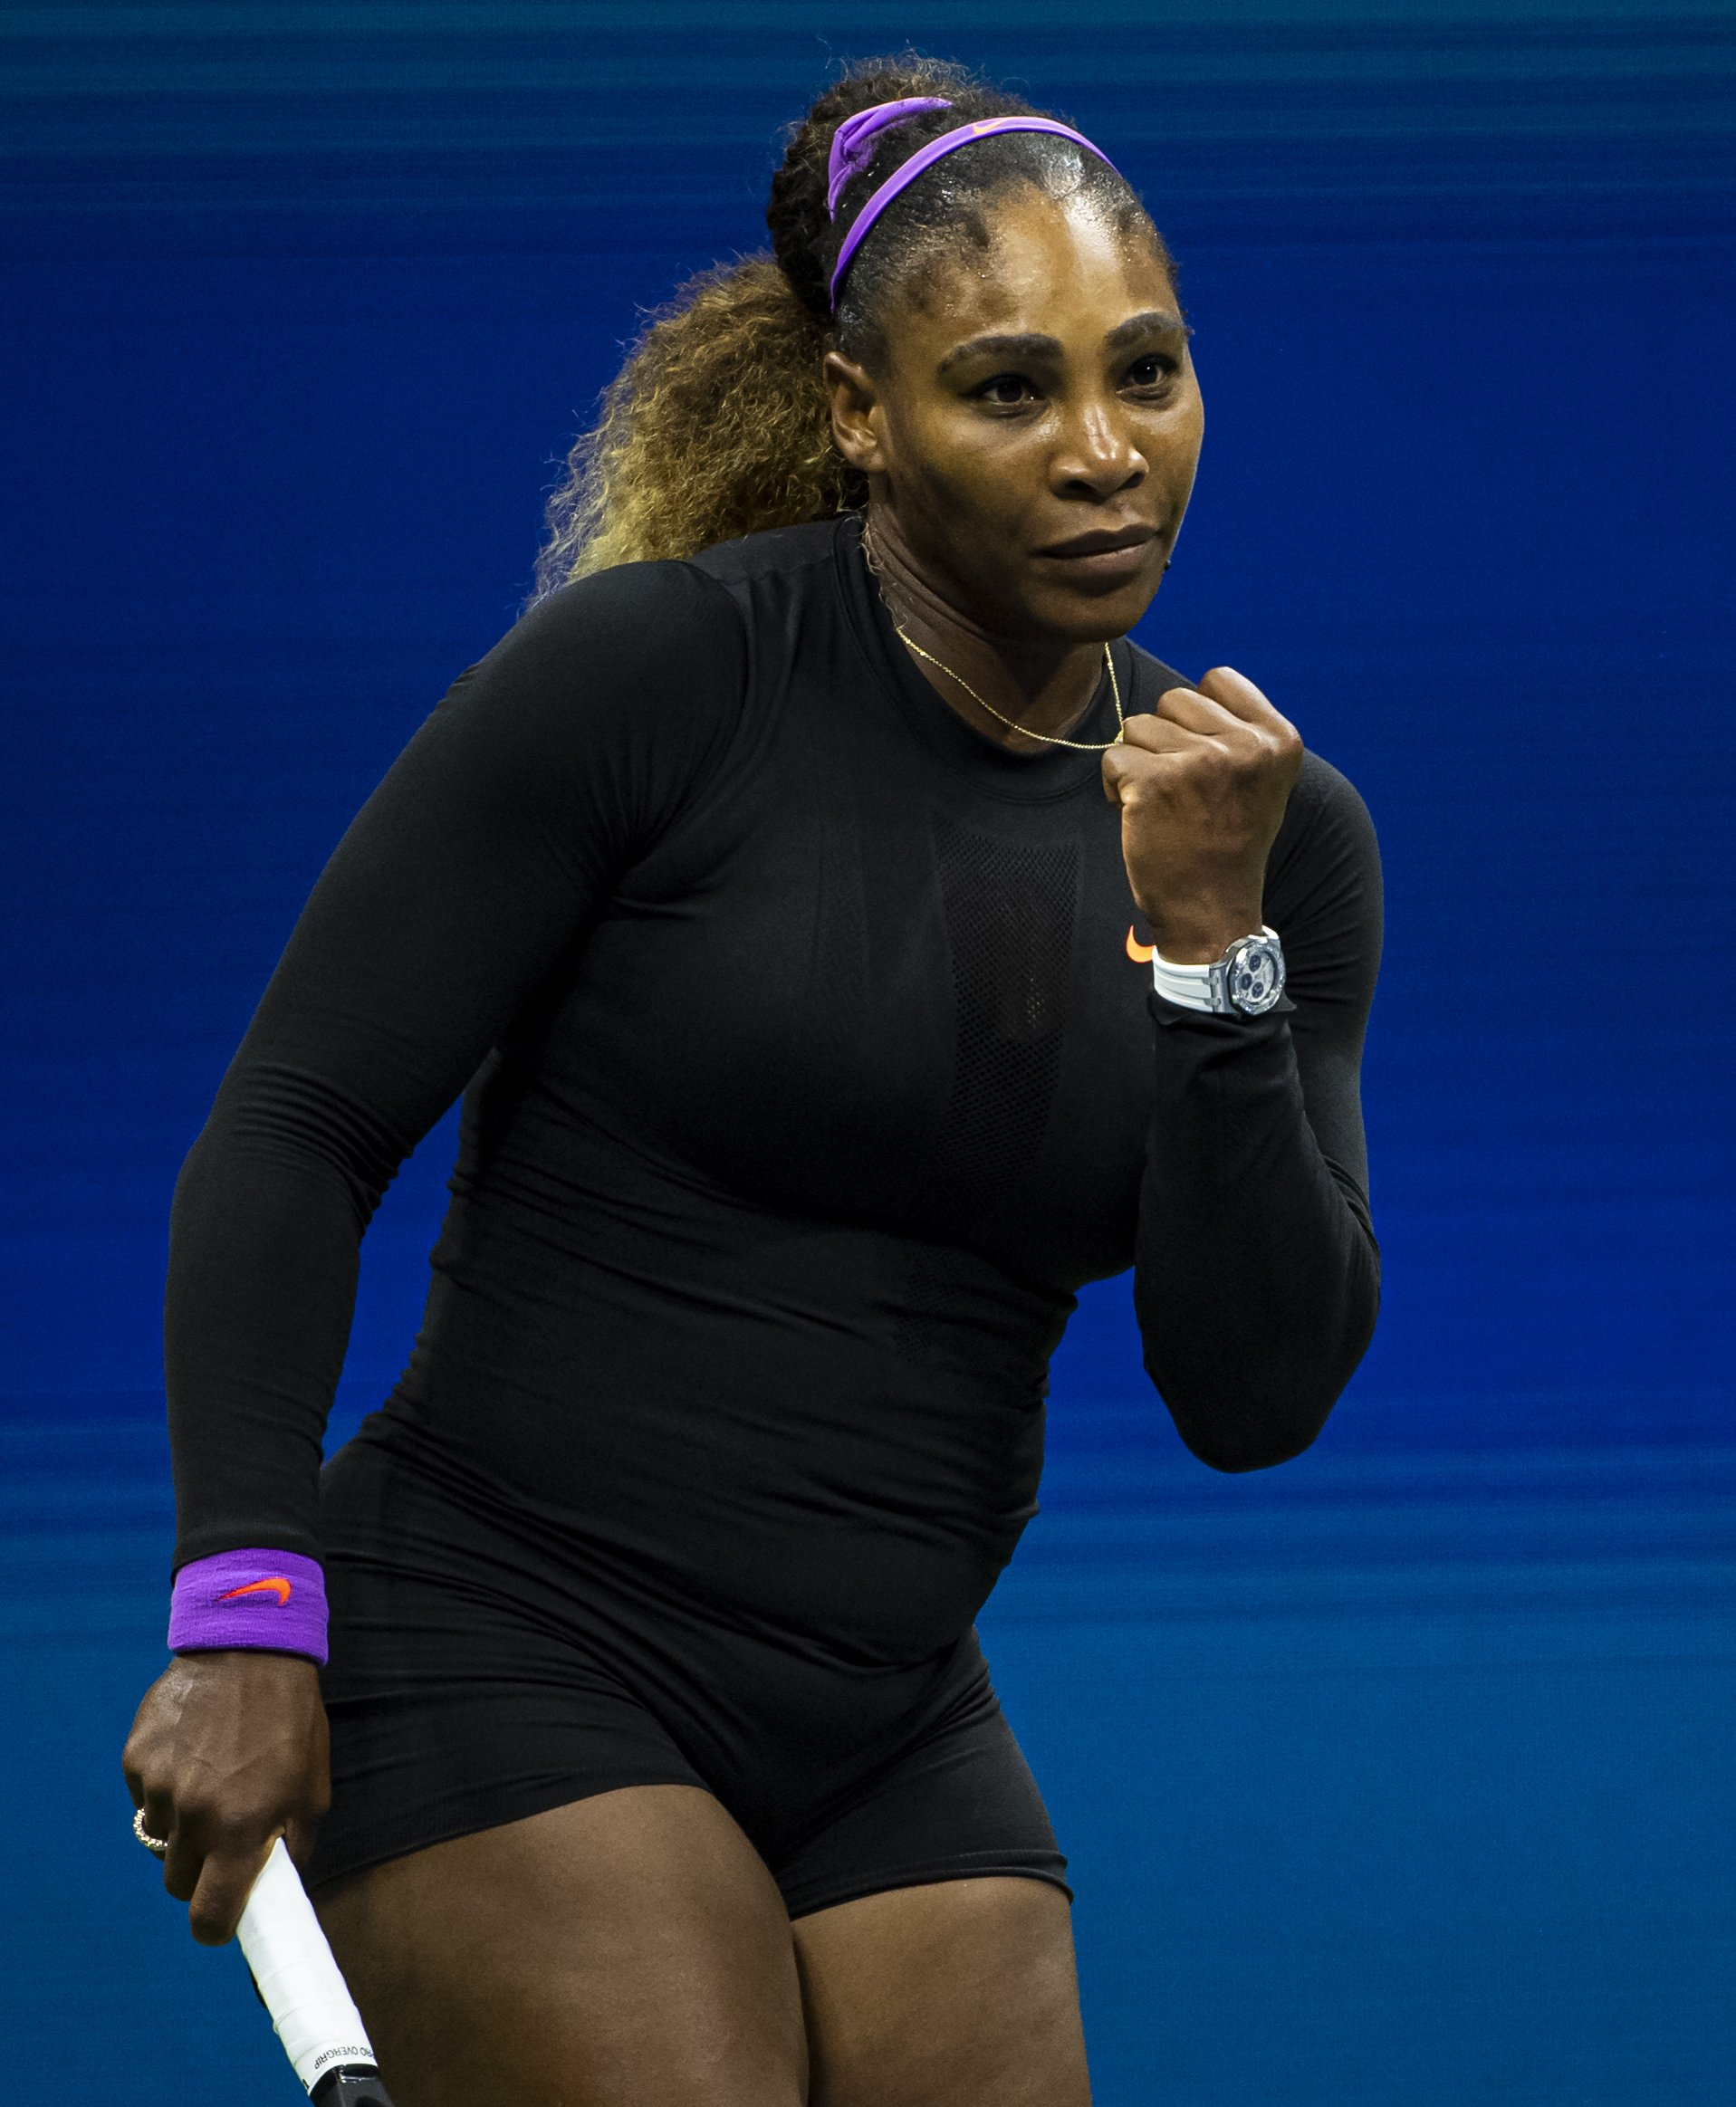 Serena Williams celebrates her victory at the USTA Billie Jean King National Tennis Center on September 05, 2019, in New York City.   Source: Getty Image.